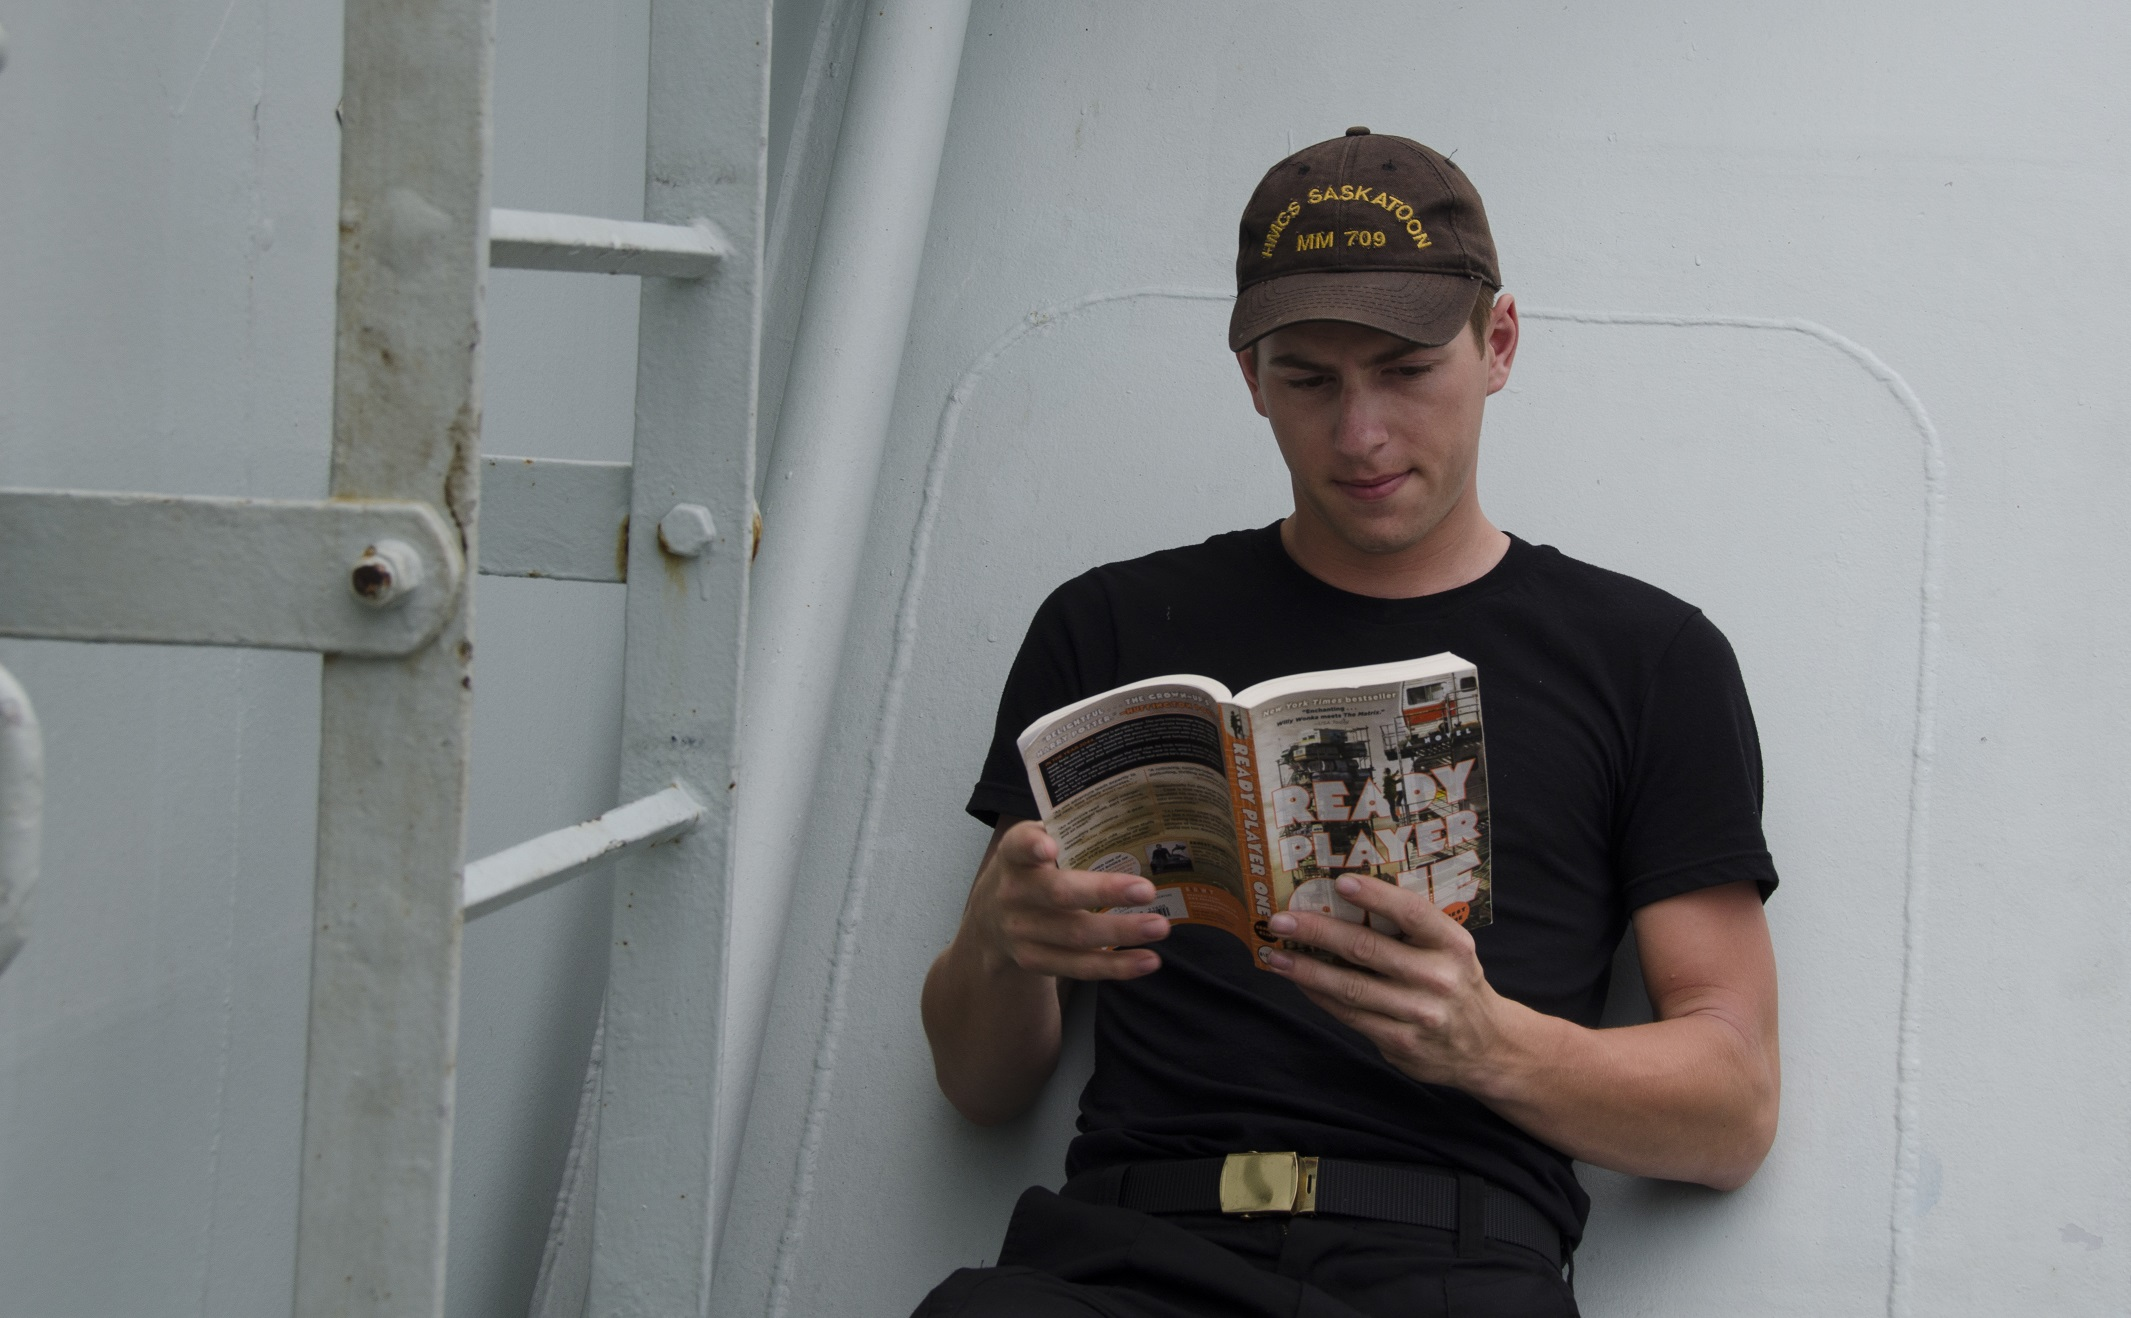 A sailor leans against a wall reading a book.